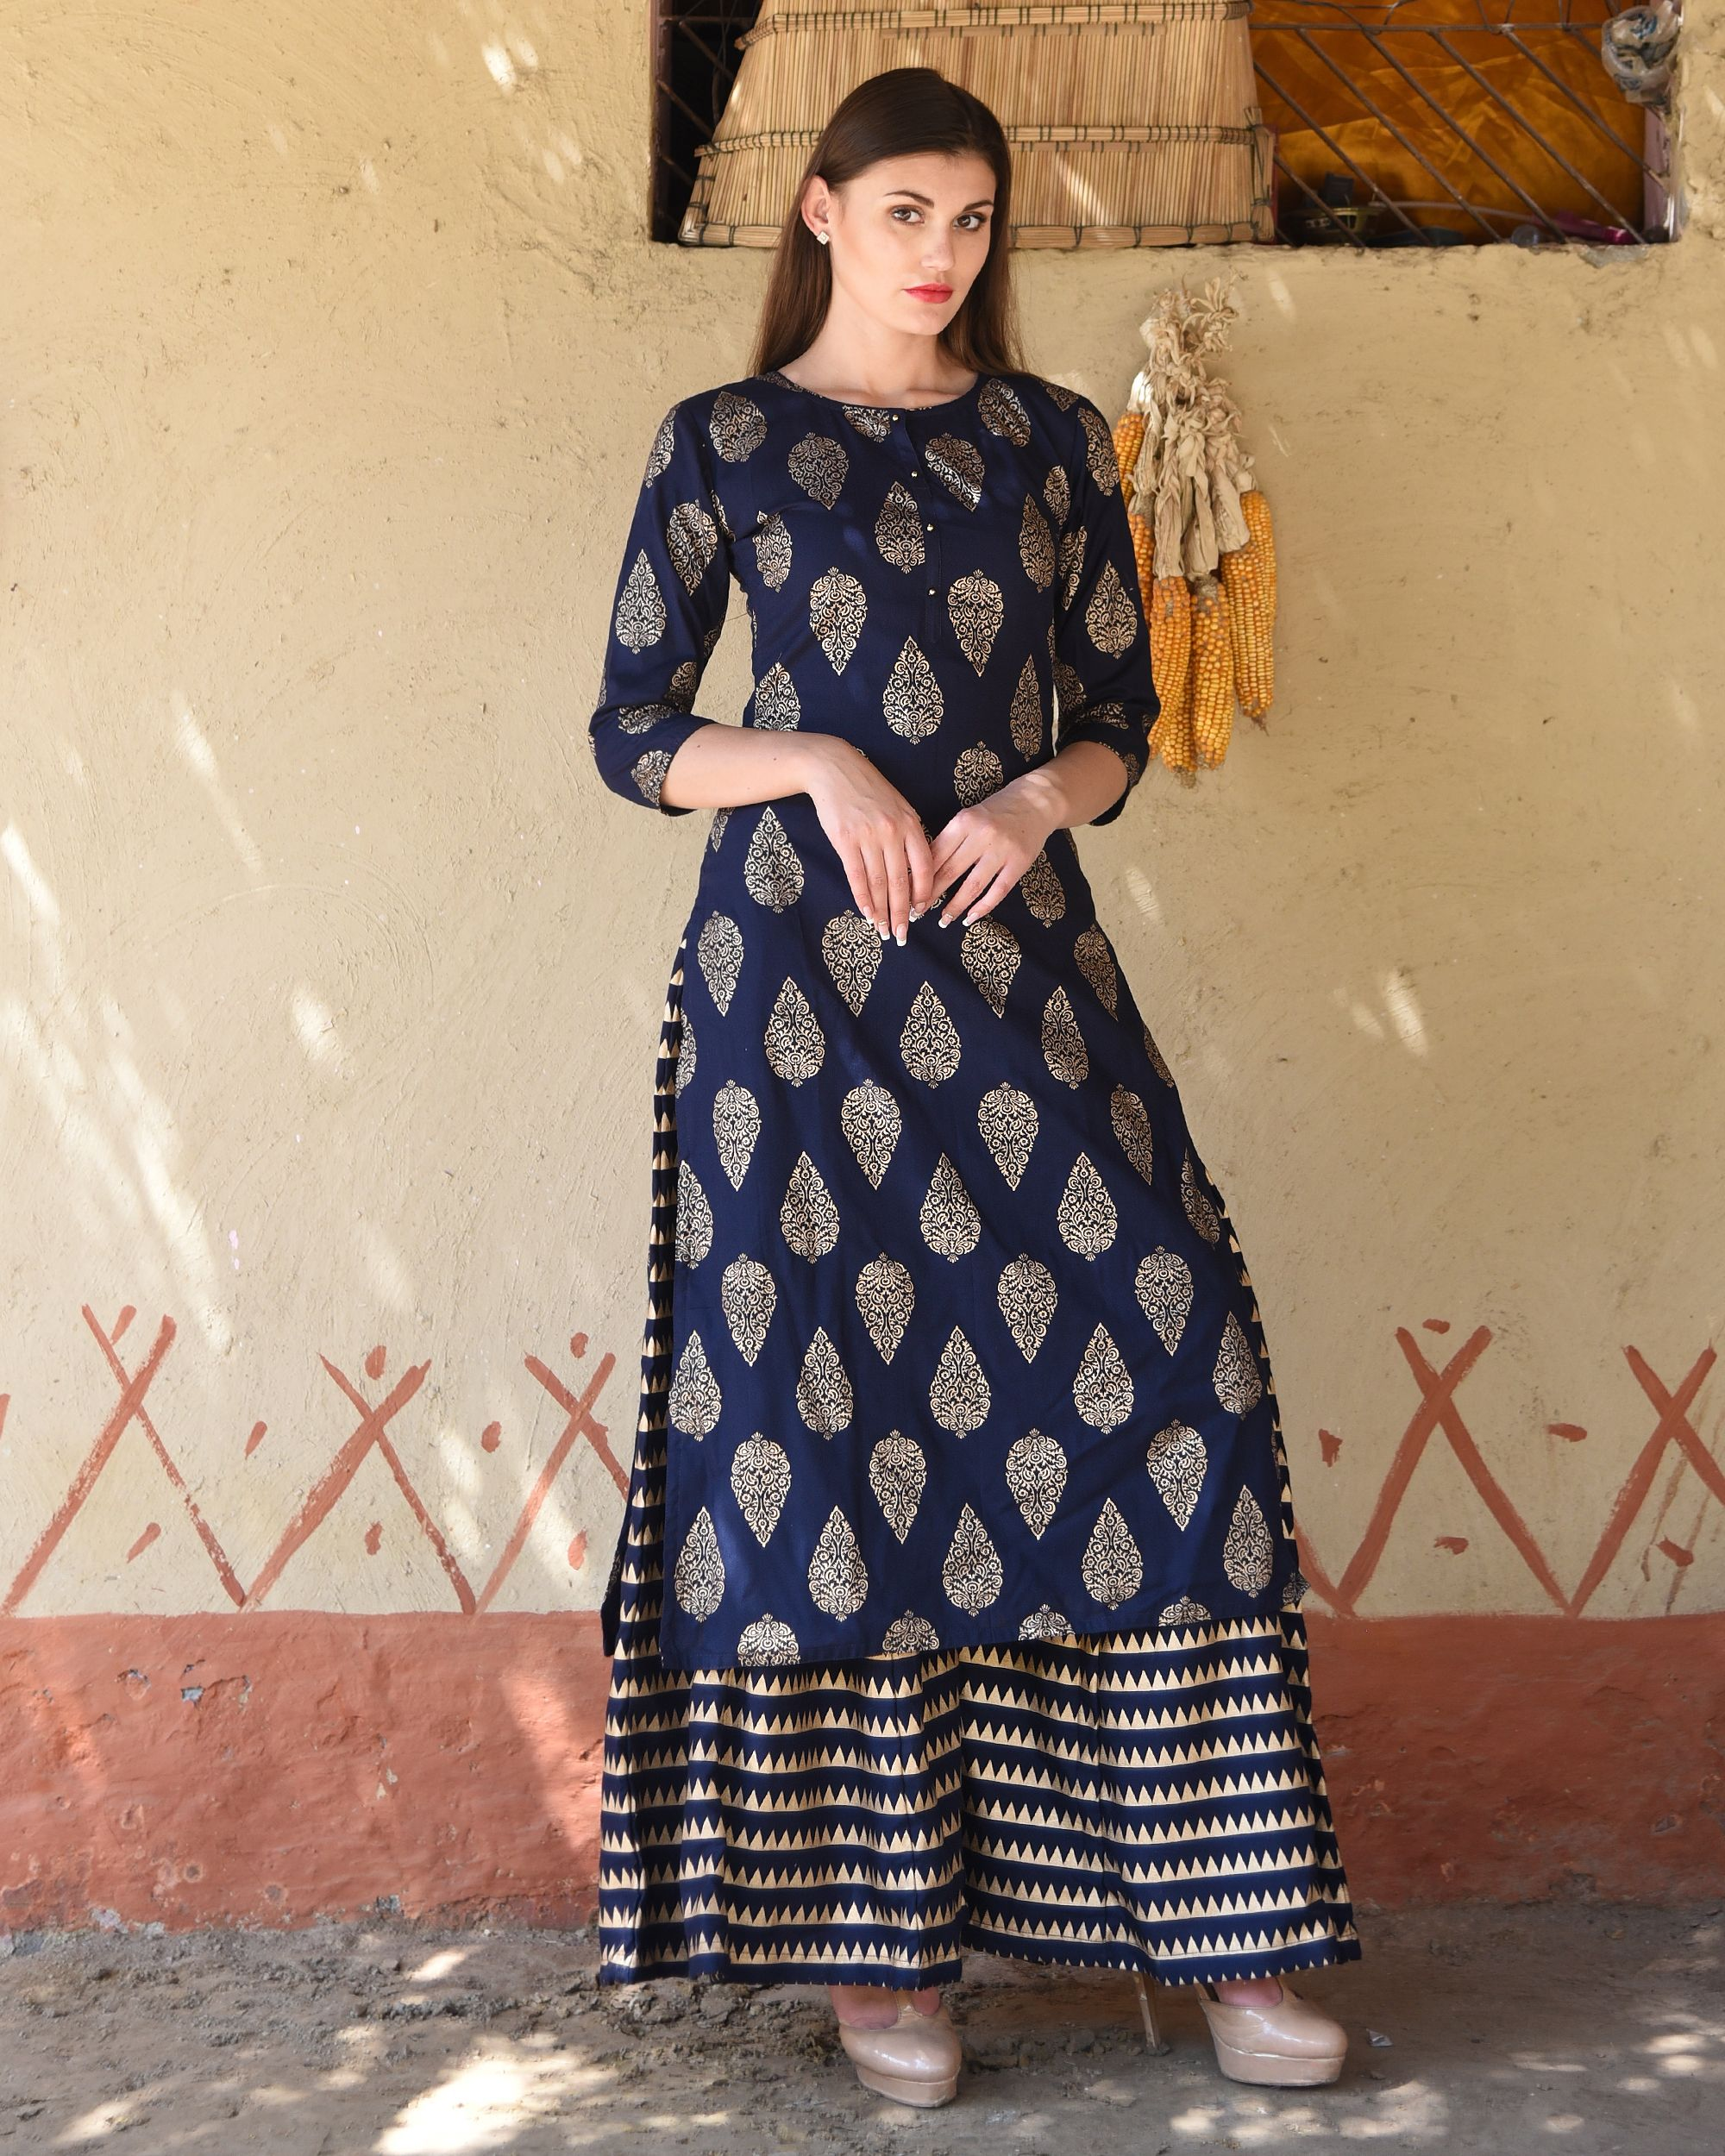 22fdaba2ab Featuring eye-catching block prints all over the kurta, this navy blue kurta  set with the matching striped palazzos exudes unmatched panache with style  and ...